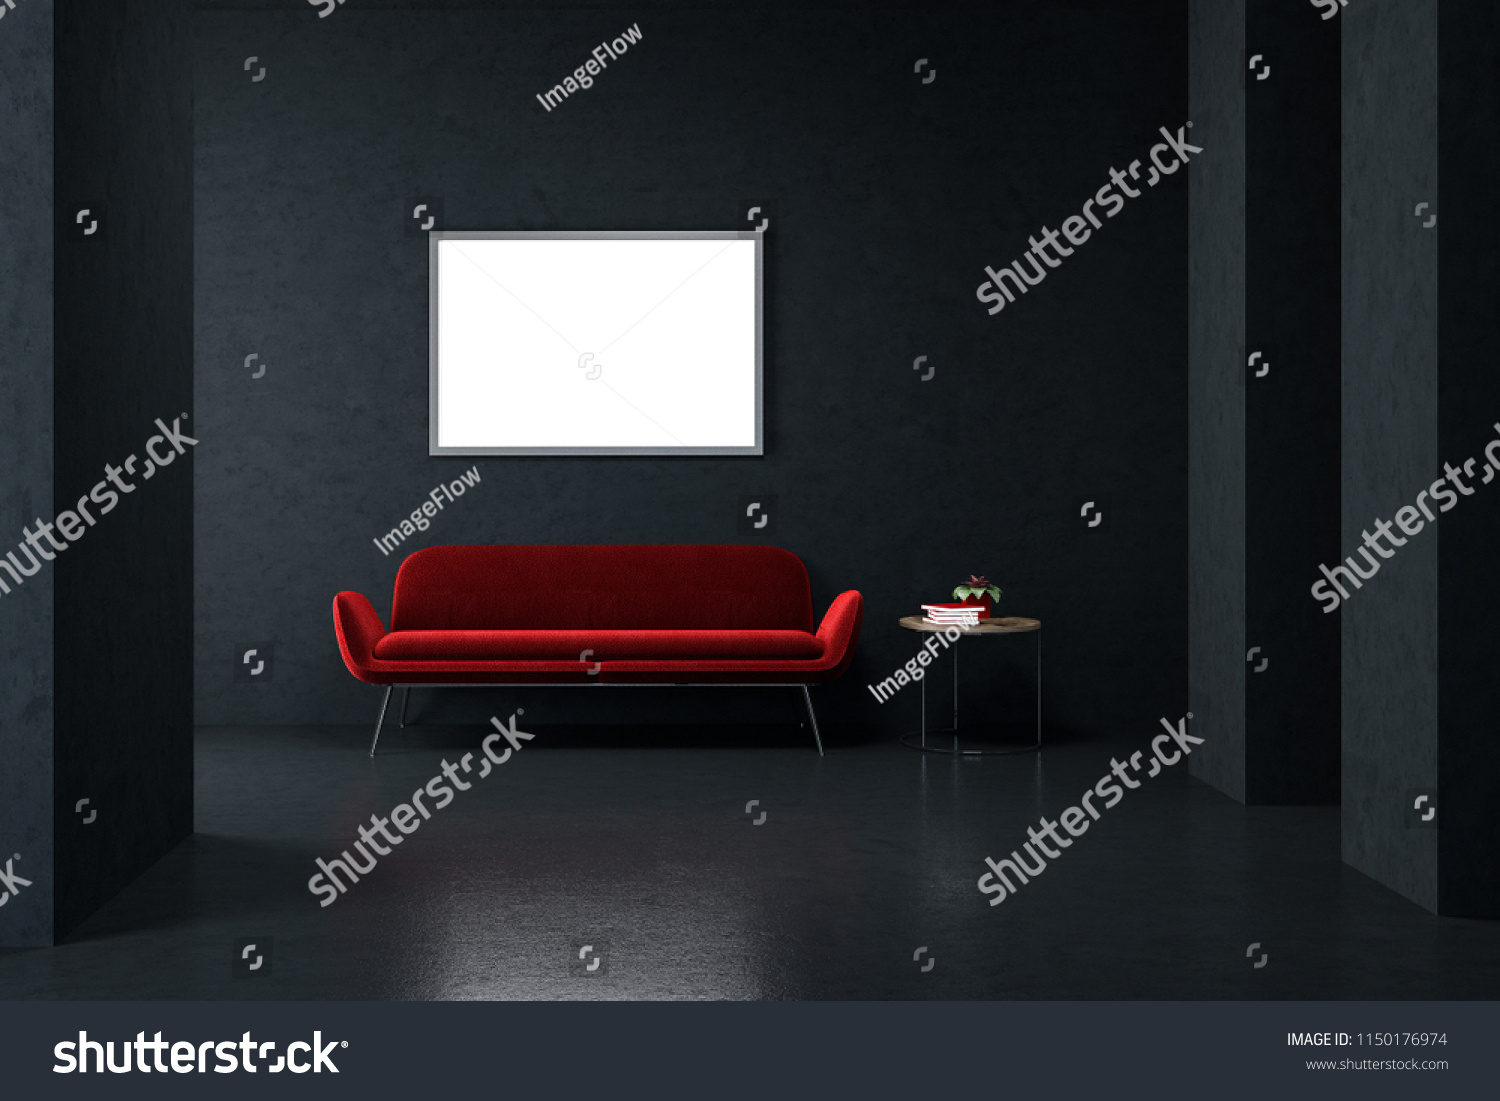 Sensational Bright Red Sofa Standing Empty Black Stock Illustration Download Free Architecture Designs Scobabritishbridgeorg